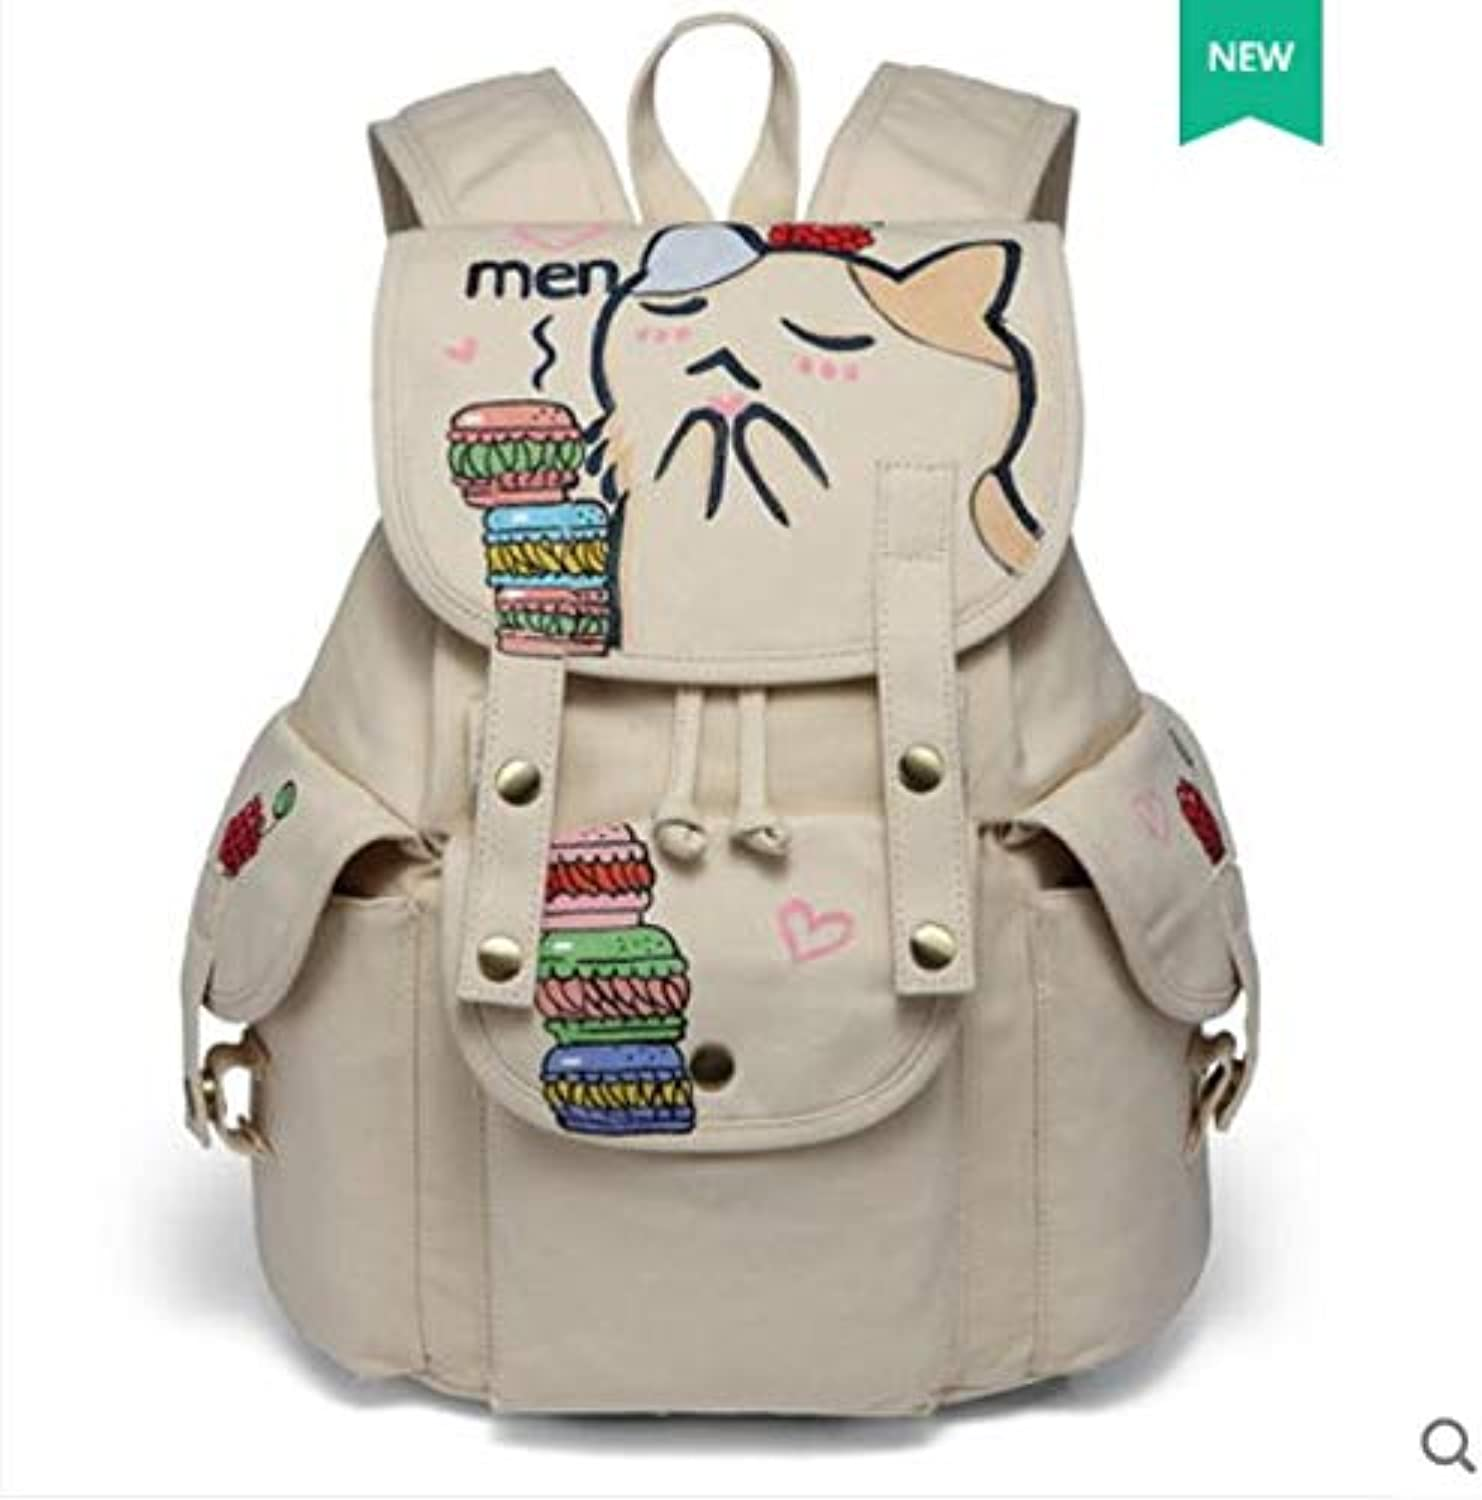 QWKZH School Bags New Hand-painted Backpack Korean Simple College Style Backpack Student Bag Men and women Travel Backpack,AZ1